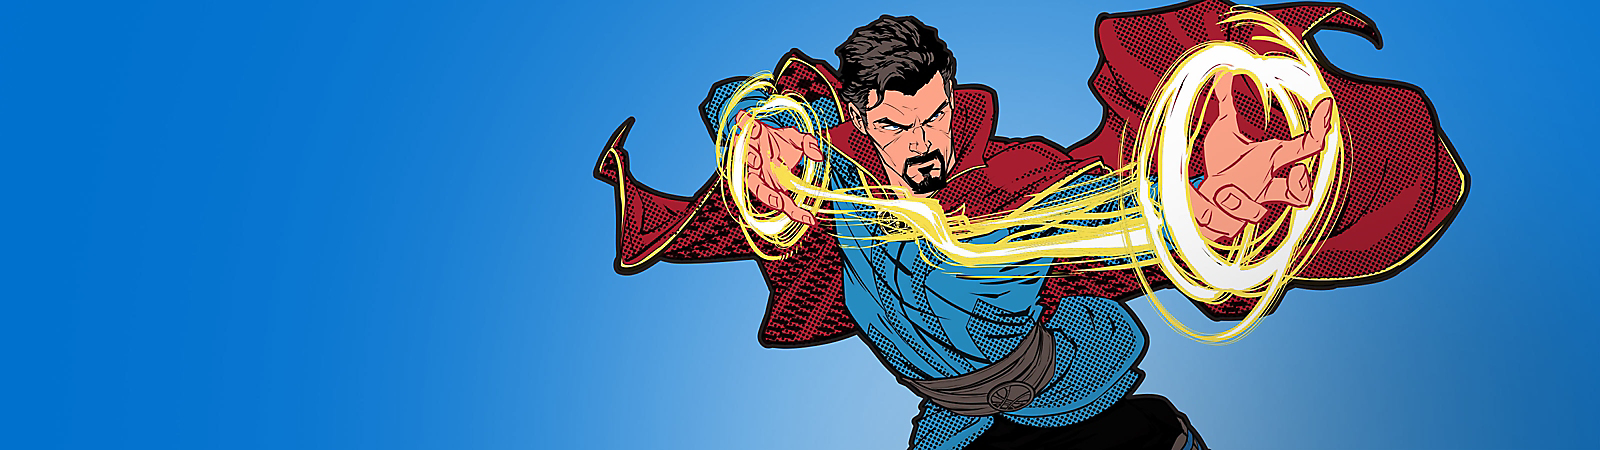 Background image of Doctor Strange